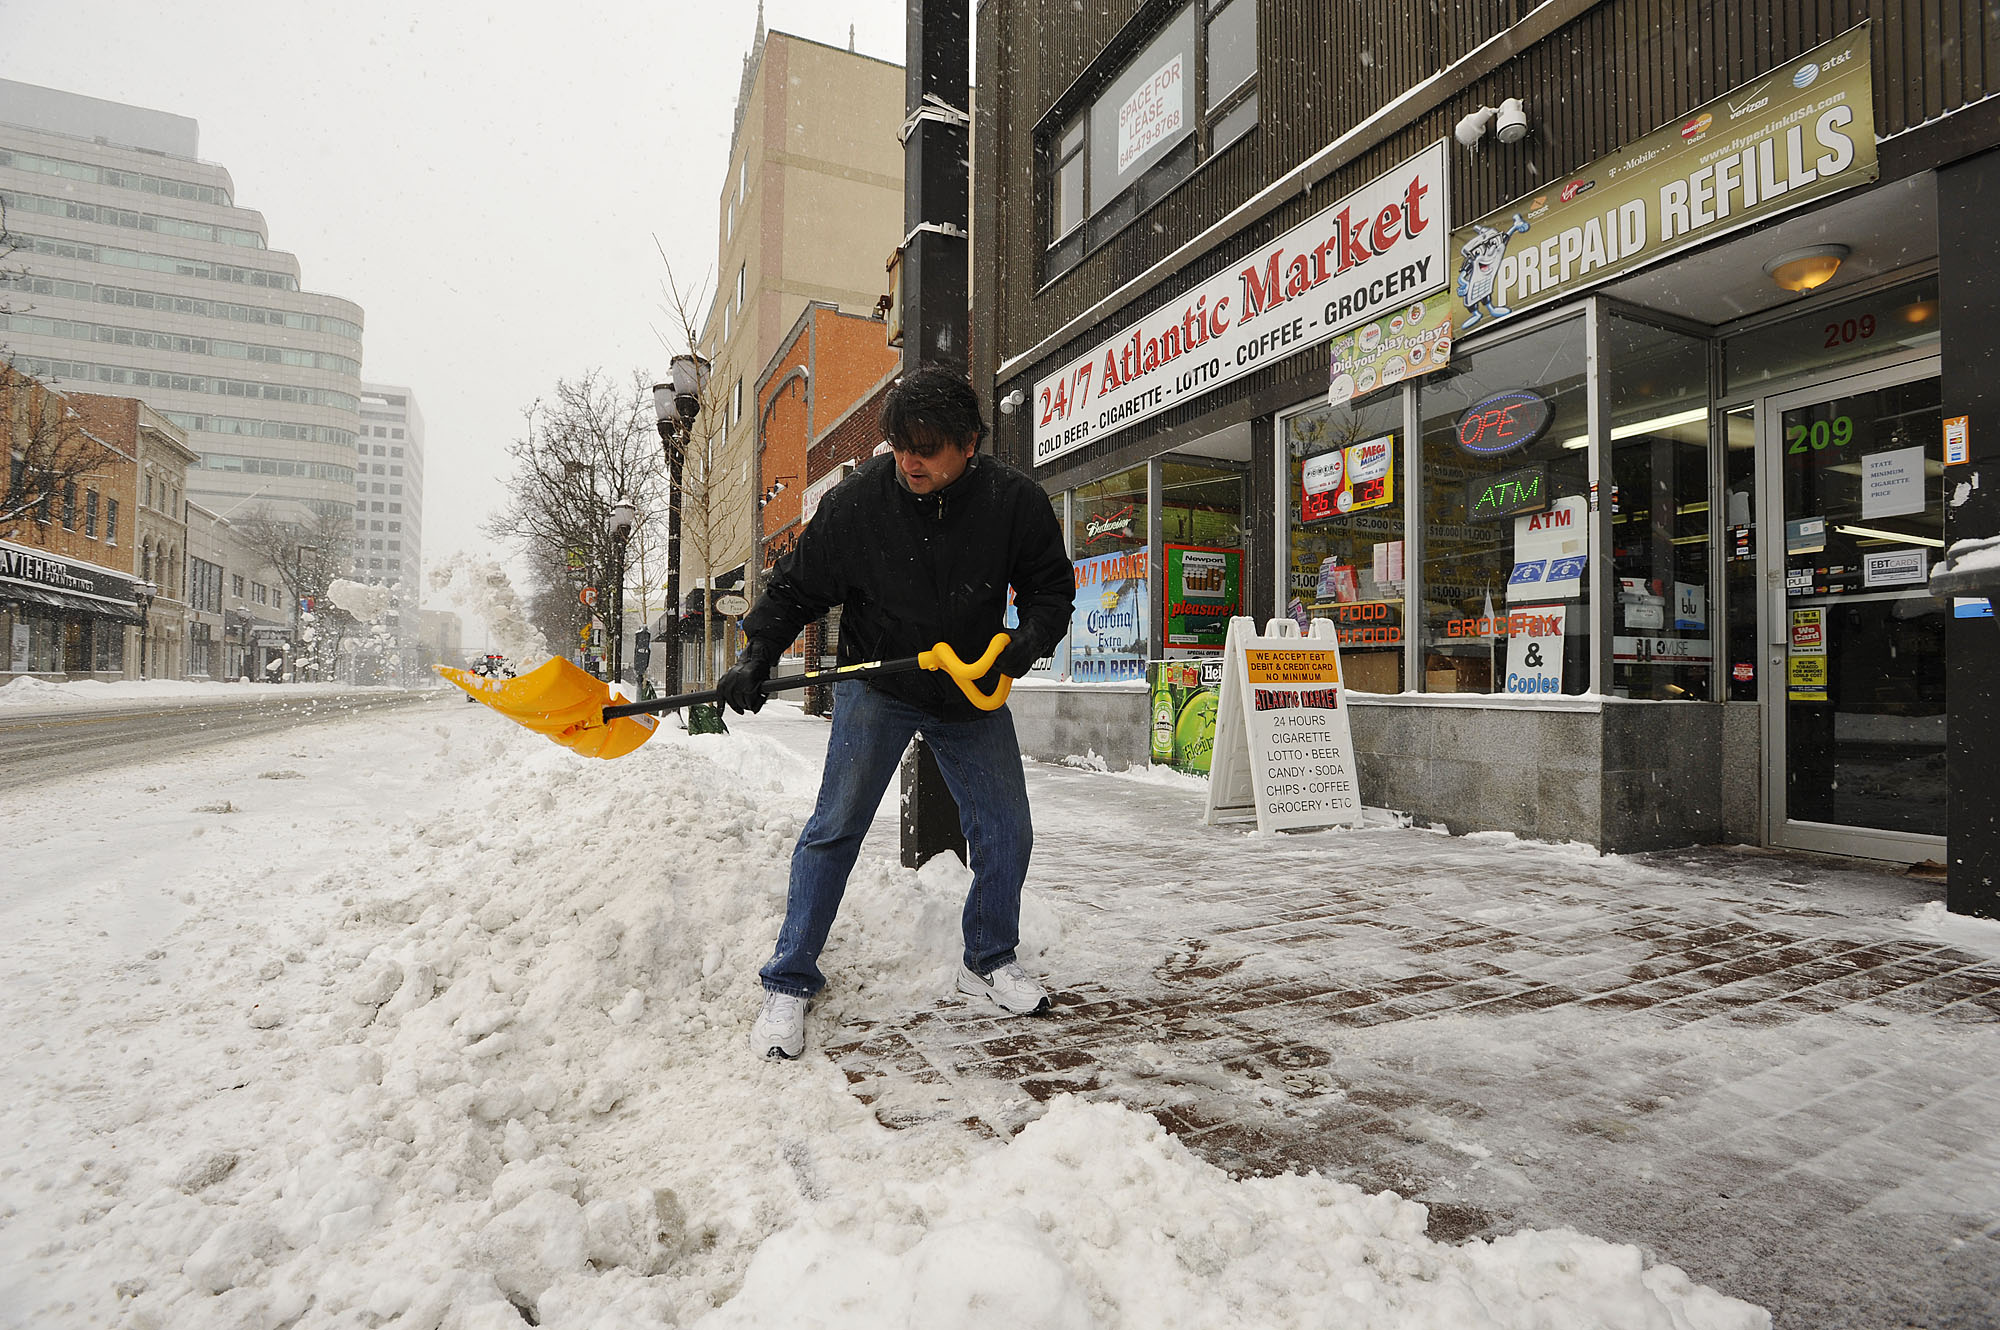 Stamford comes back to life after near miss with blizzard